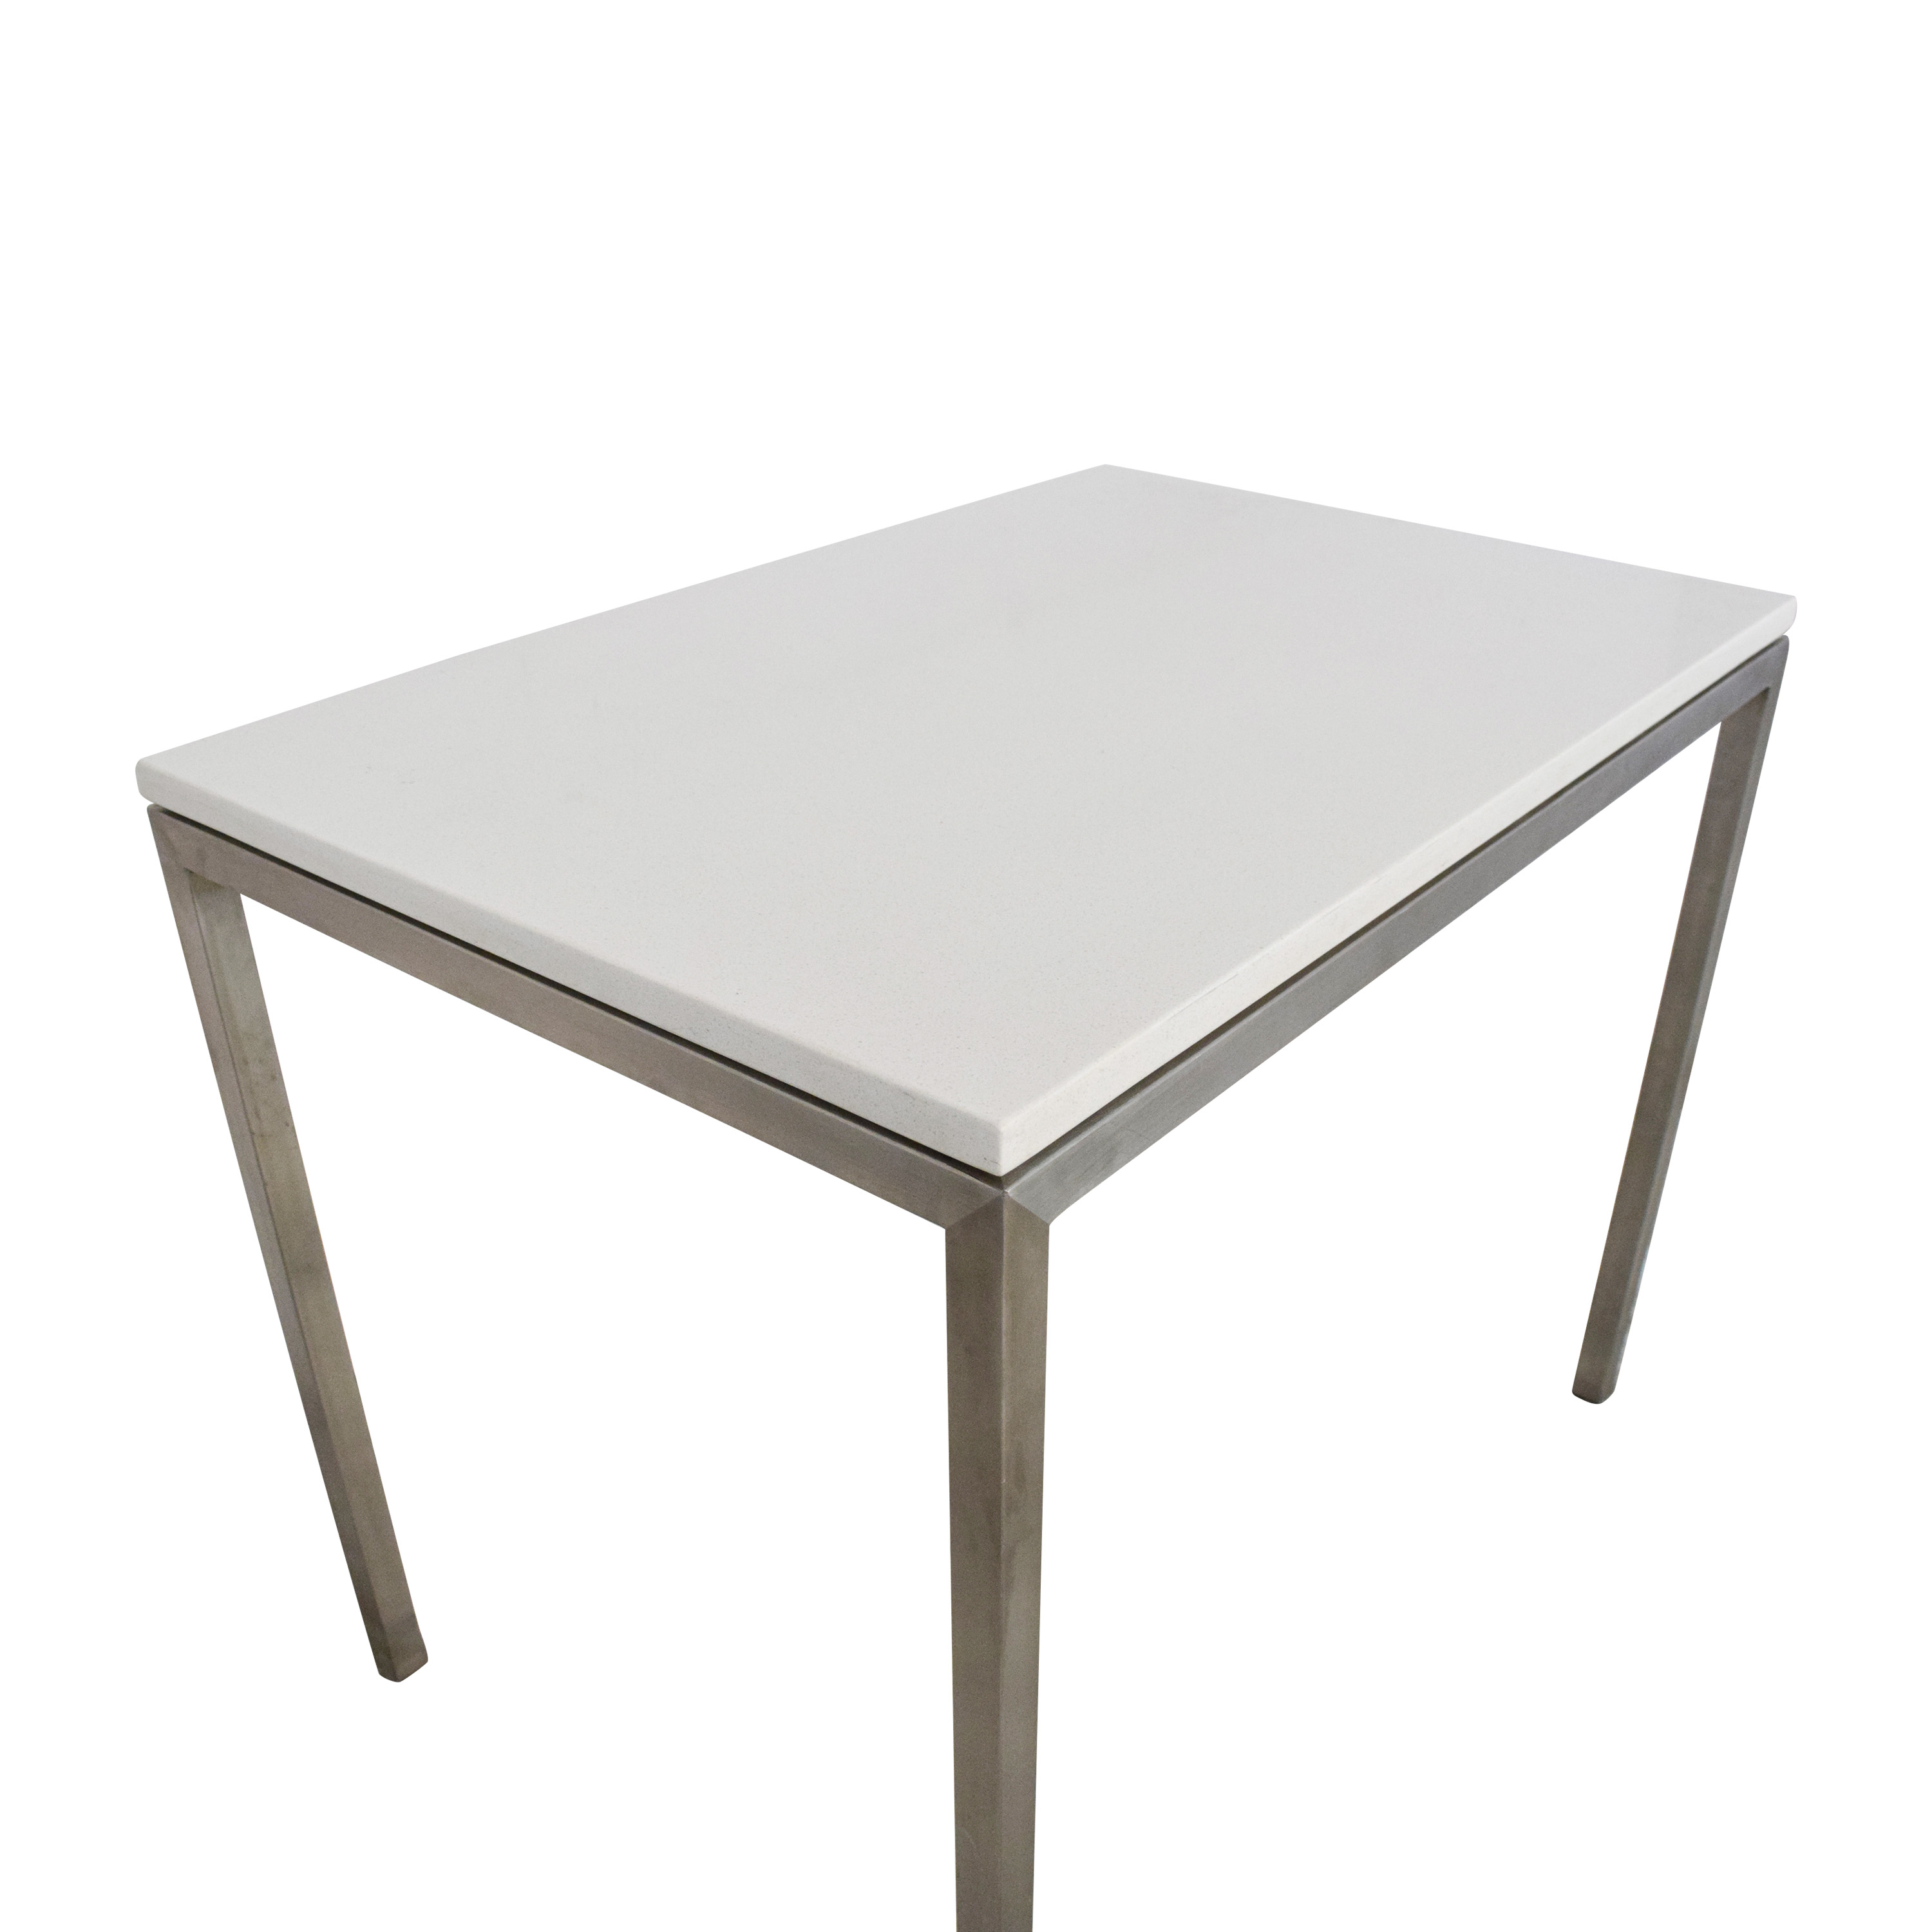 Room & Board Portica Table / Utility Tables